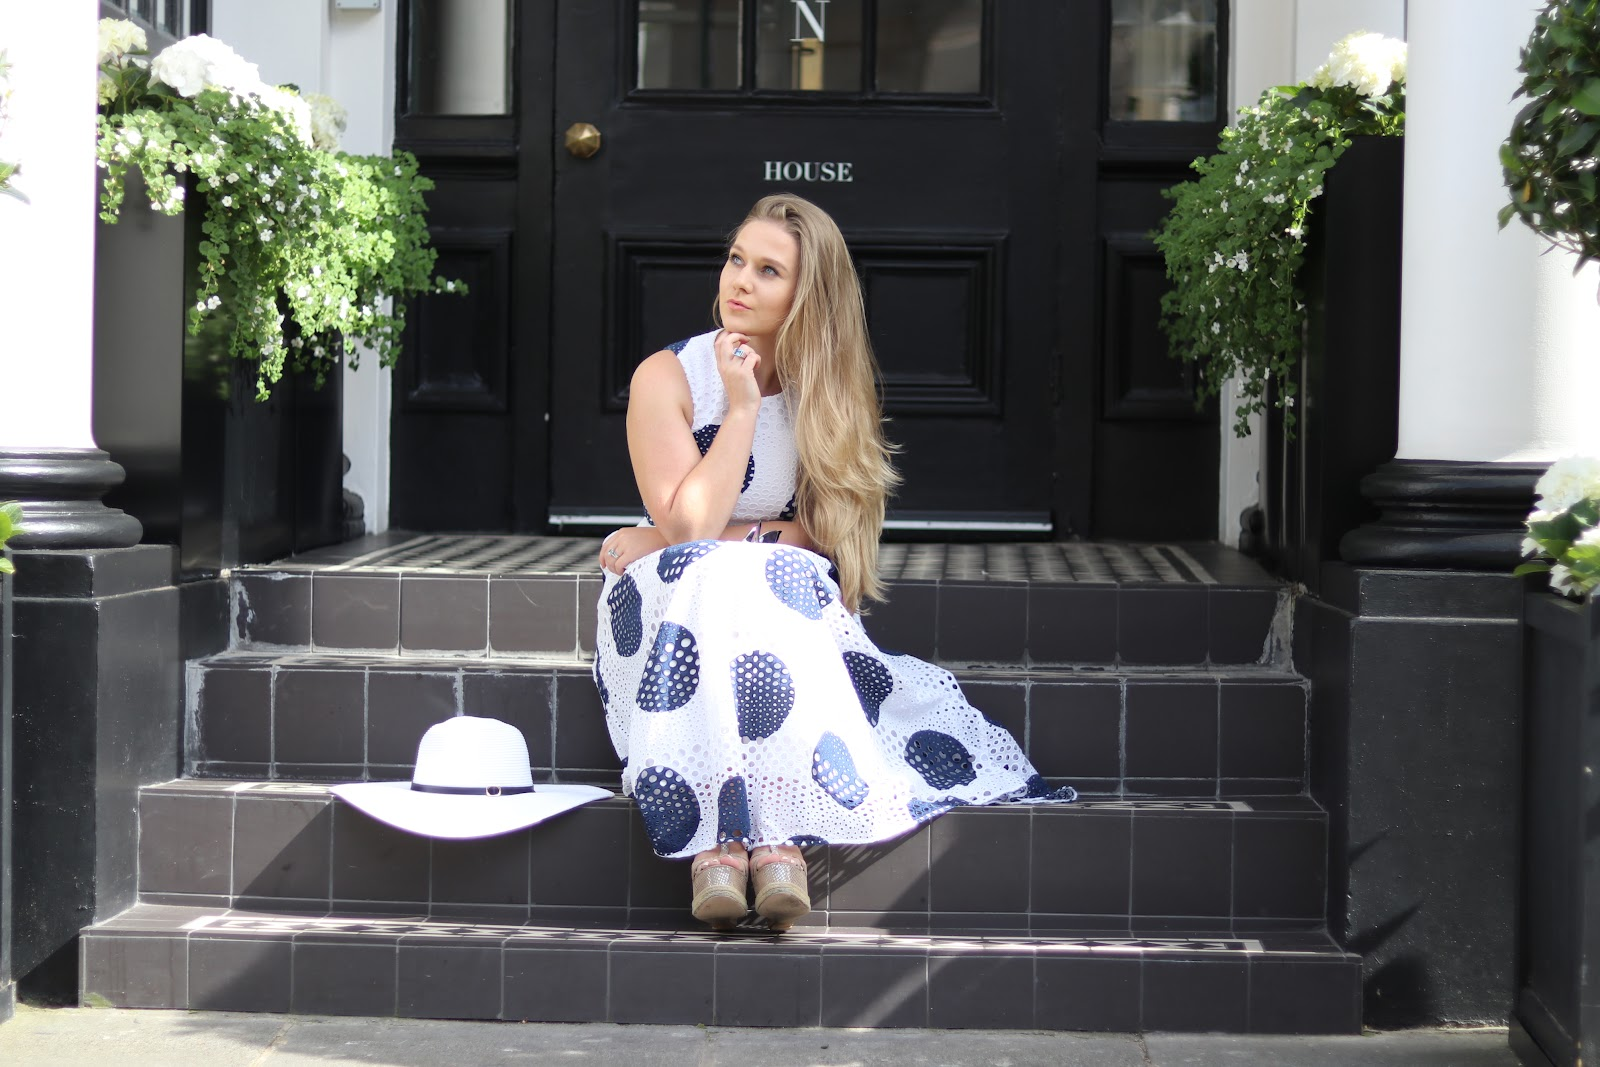 Blonde Girl, Katie Heath wearing Polka Dot L.K.Bennett Dress at Afternoon Tea at the Kensington Hotel, Chelsea, London